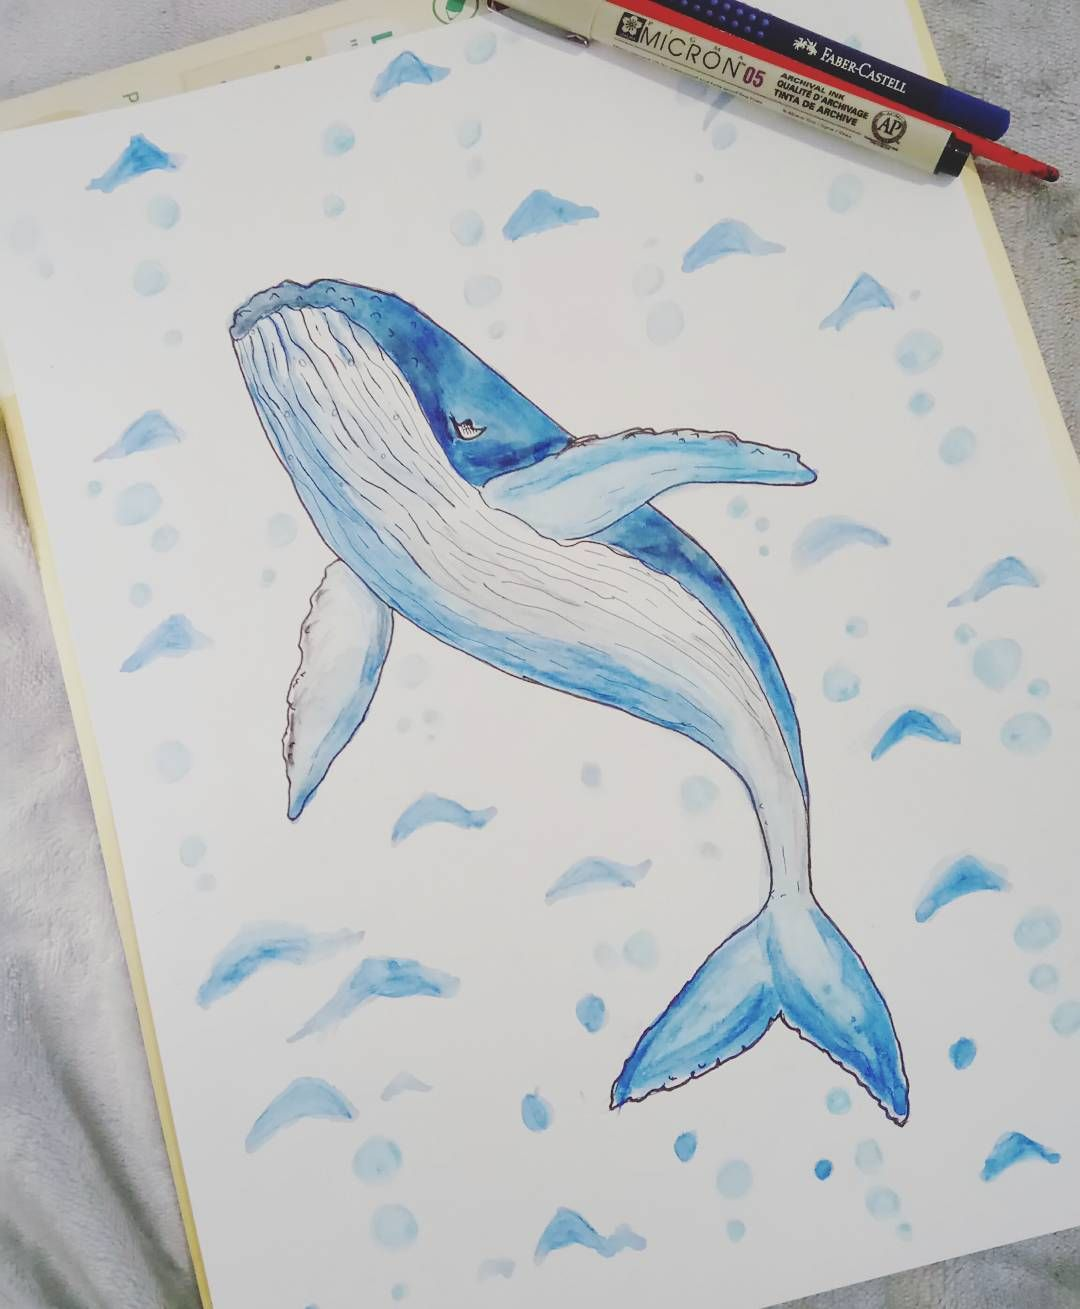 Uncategorized Blue Whale Drawing blue whale by helsvite follow me on instagram httpswww httpswww